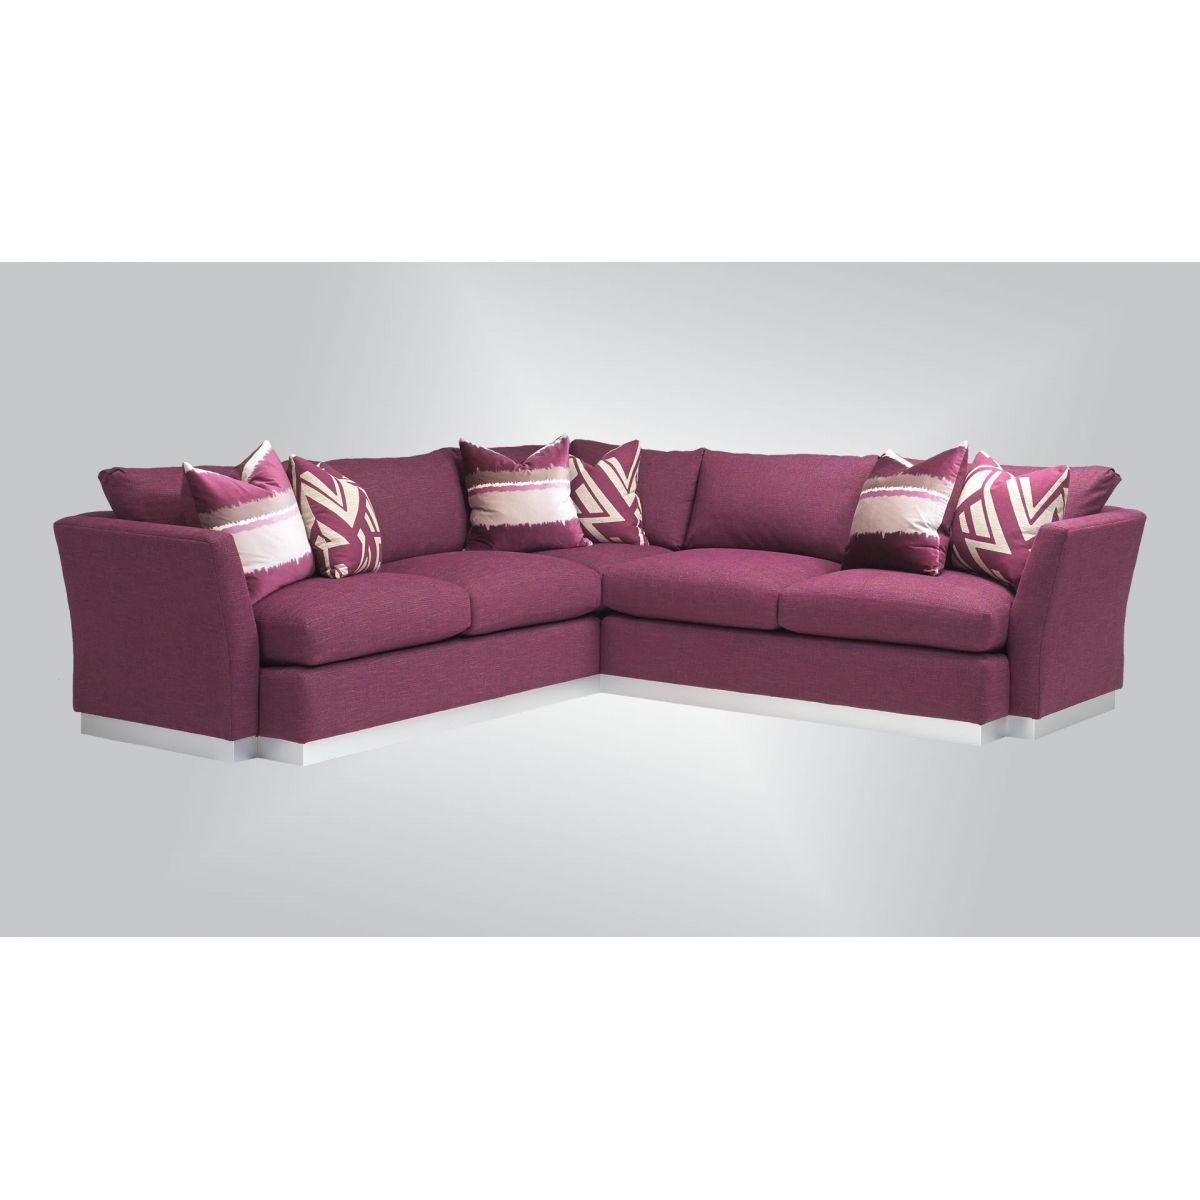 Sectional | Throughout Burton James Sectional Sofas (View 6 of 20)